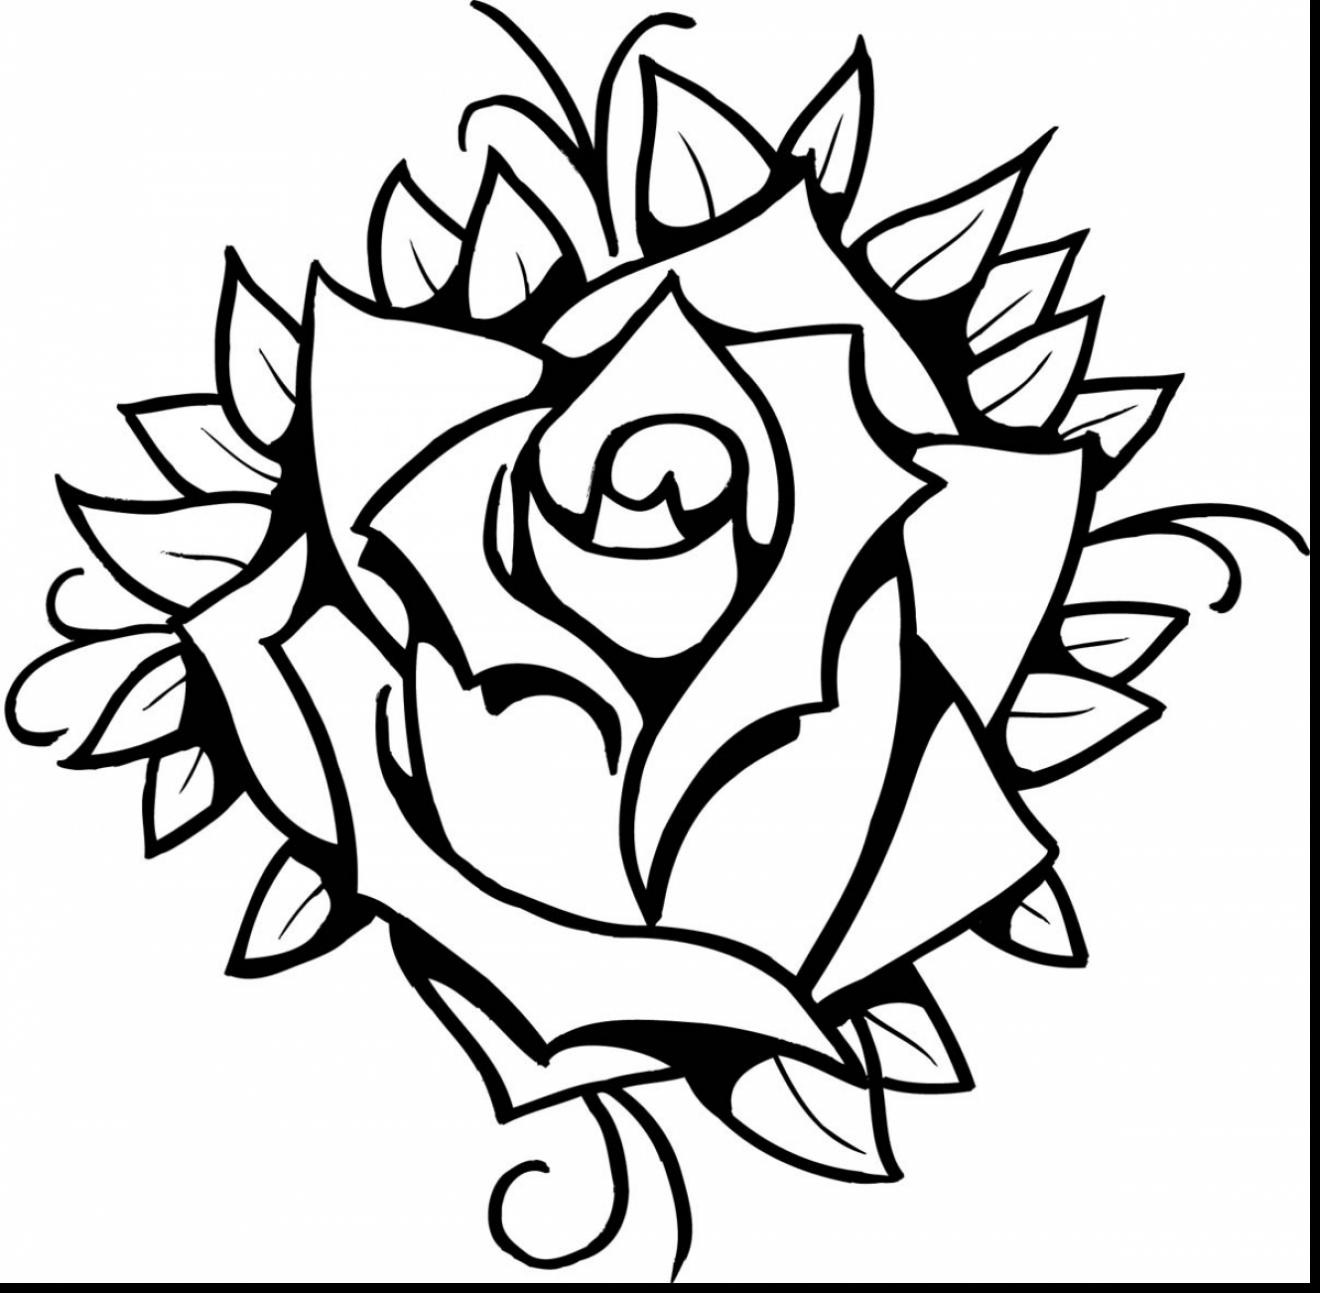 heart and roses coloring pages hearts and roses with sharp thorn coloring page hearts pages heart roses and coloring